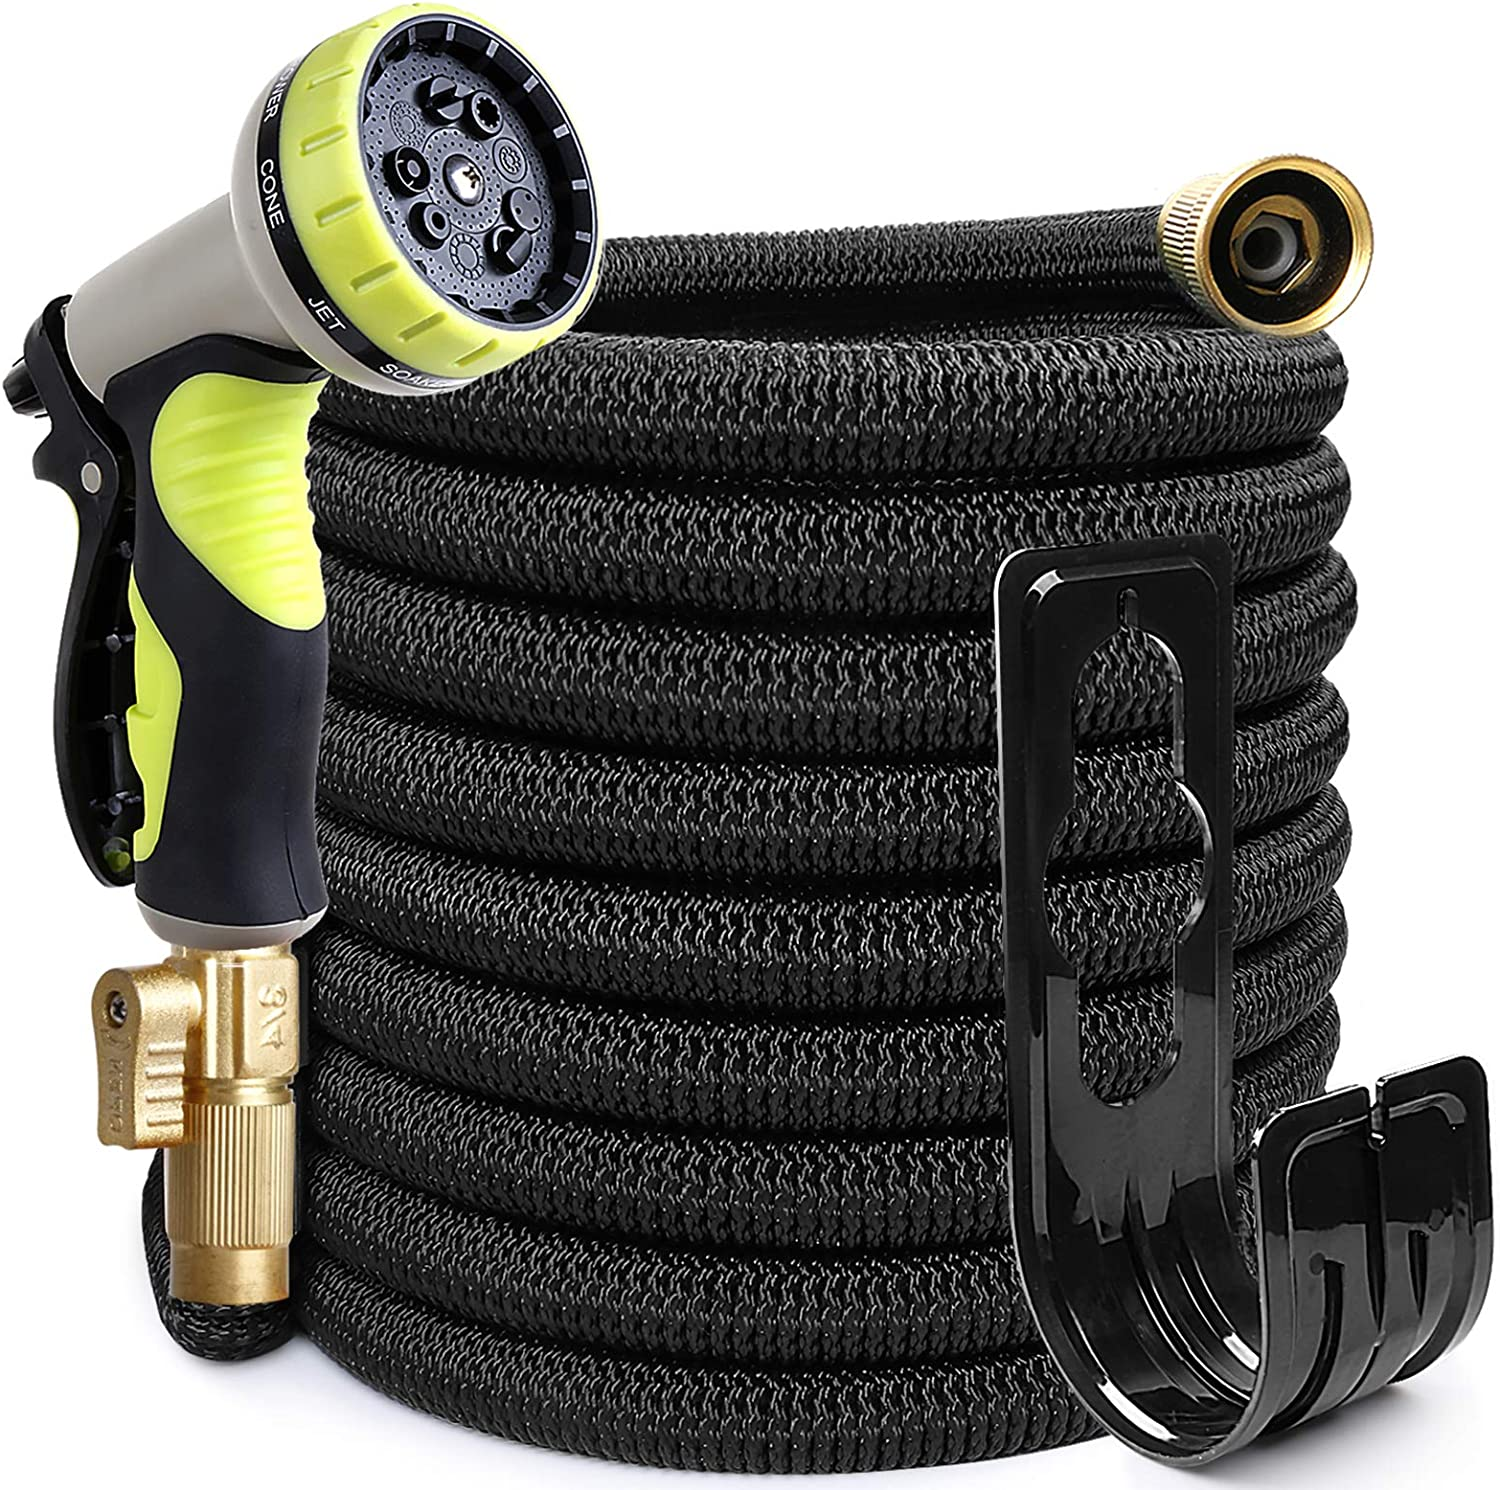 EOOIO 75FT Garden Hose, Flexible Water Hose with 100% Solid Brass Valve 9 Function Hose Nozzle, Outdoor Hose Lightweight Gardening Yard Hoses